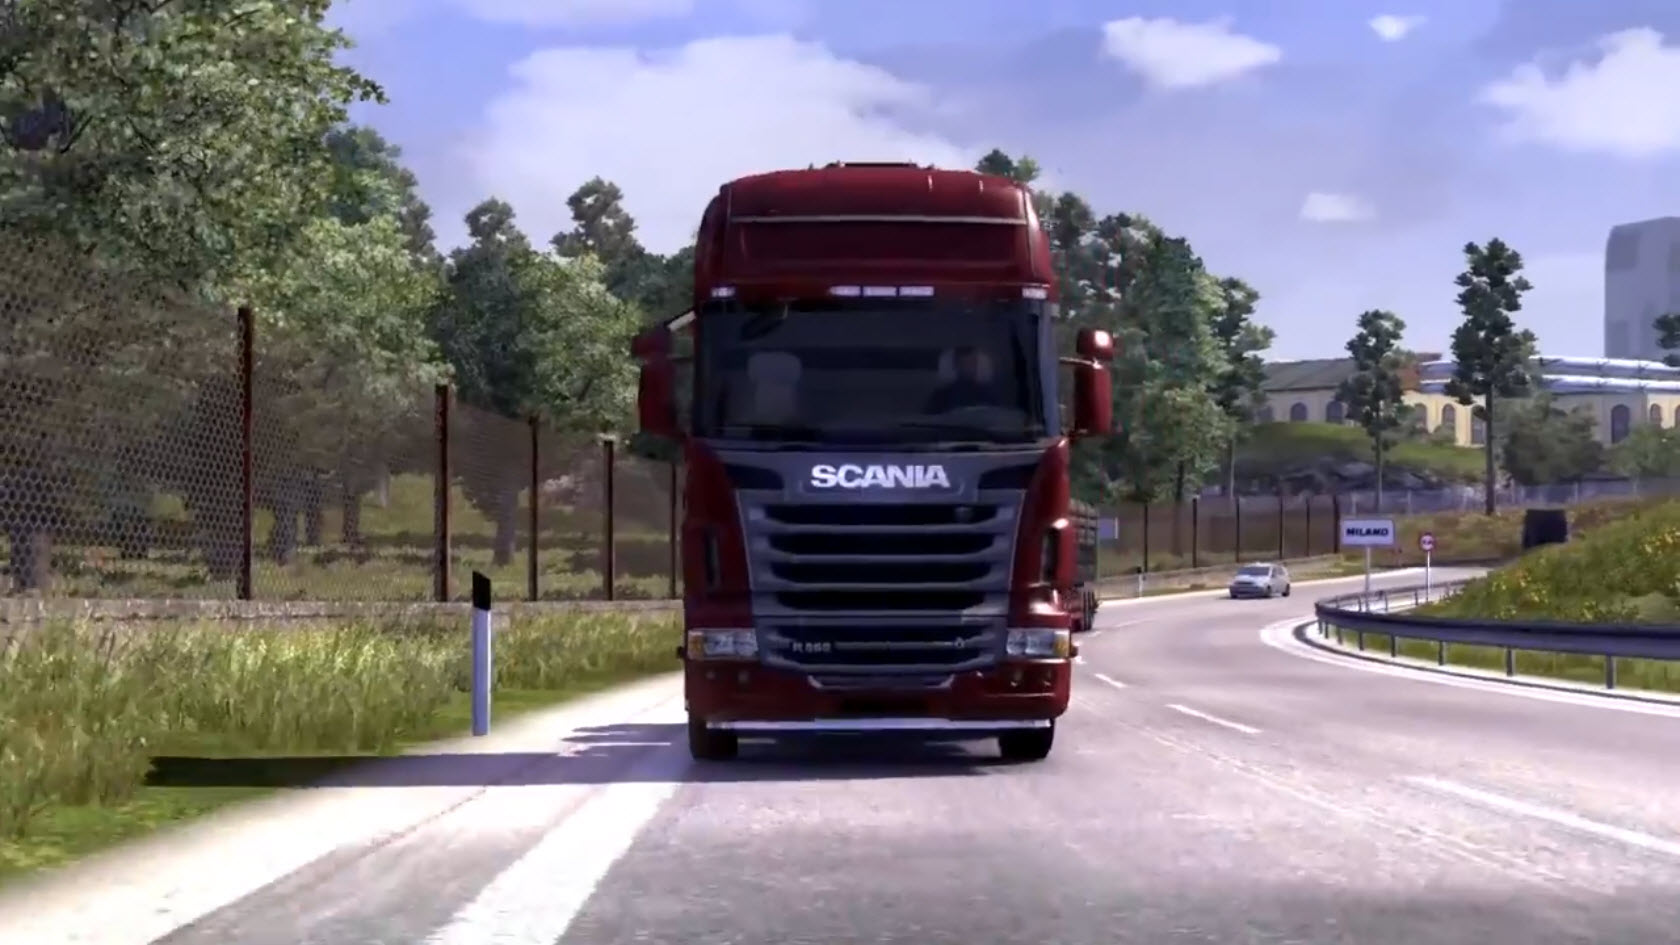 Public beta 1.7.2.1 released for Euro Truck Simulator 2